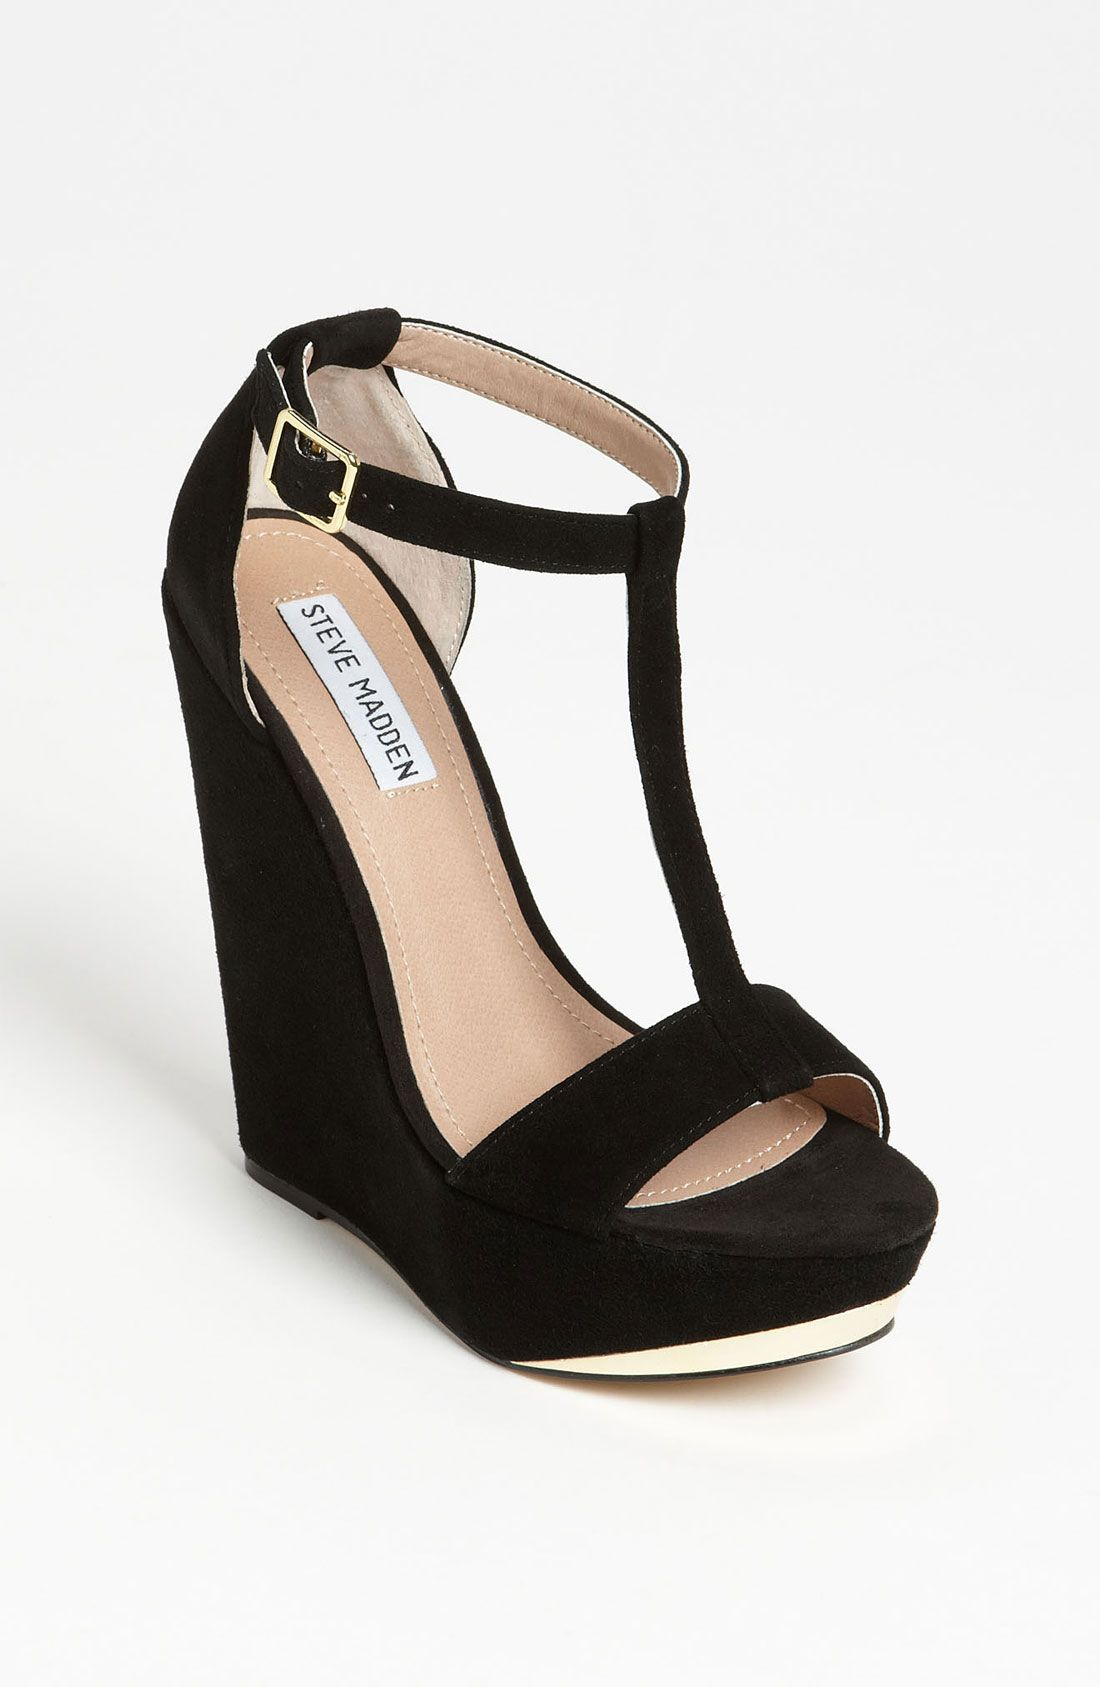 4822f2ac3e6 Steve Madden 'Xtrime' Wedge Platform | Nordstrom | Shoes in 2019 ...